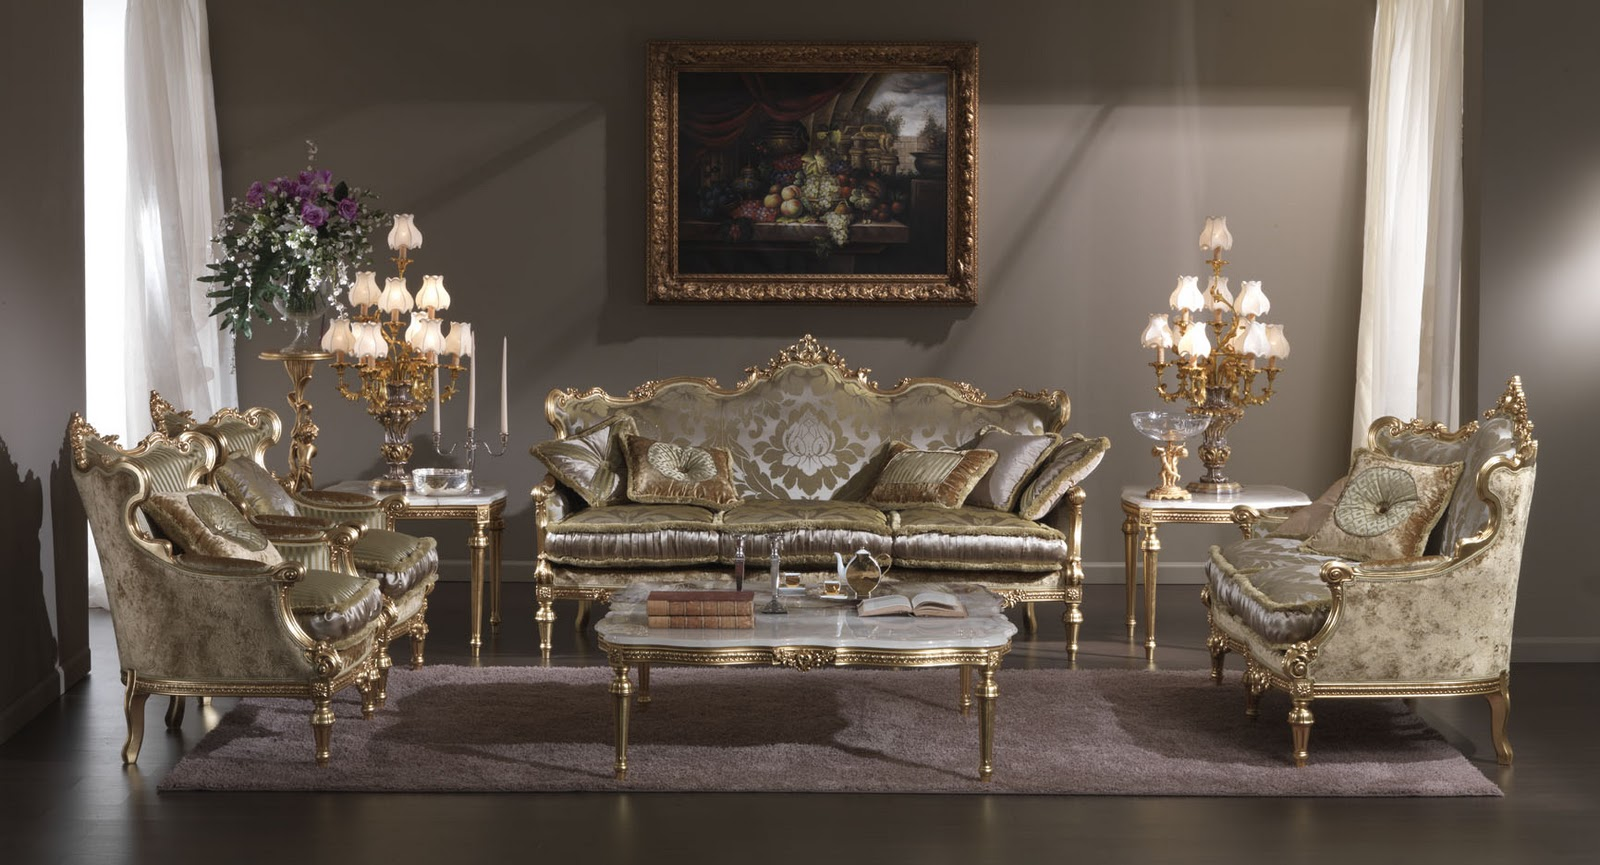 Forget New Make Your Home Looks Stylish With Antique Furniture